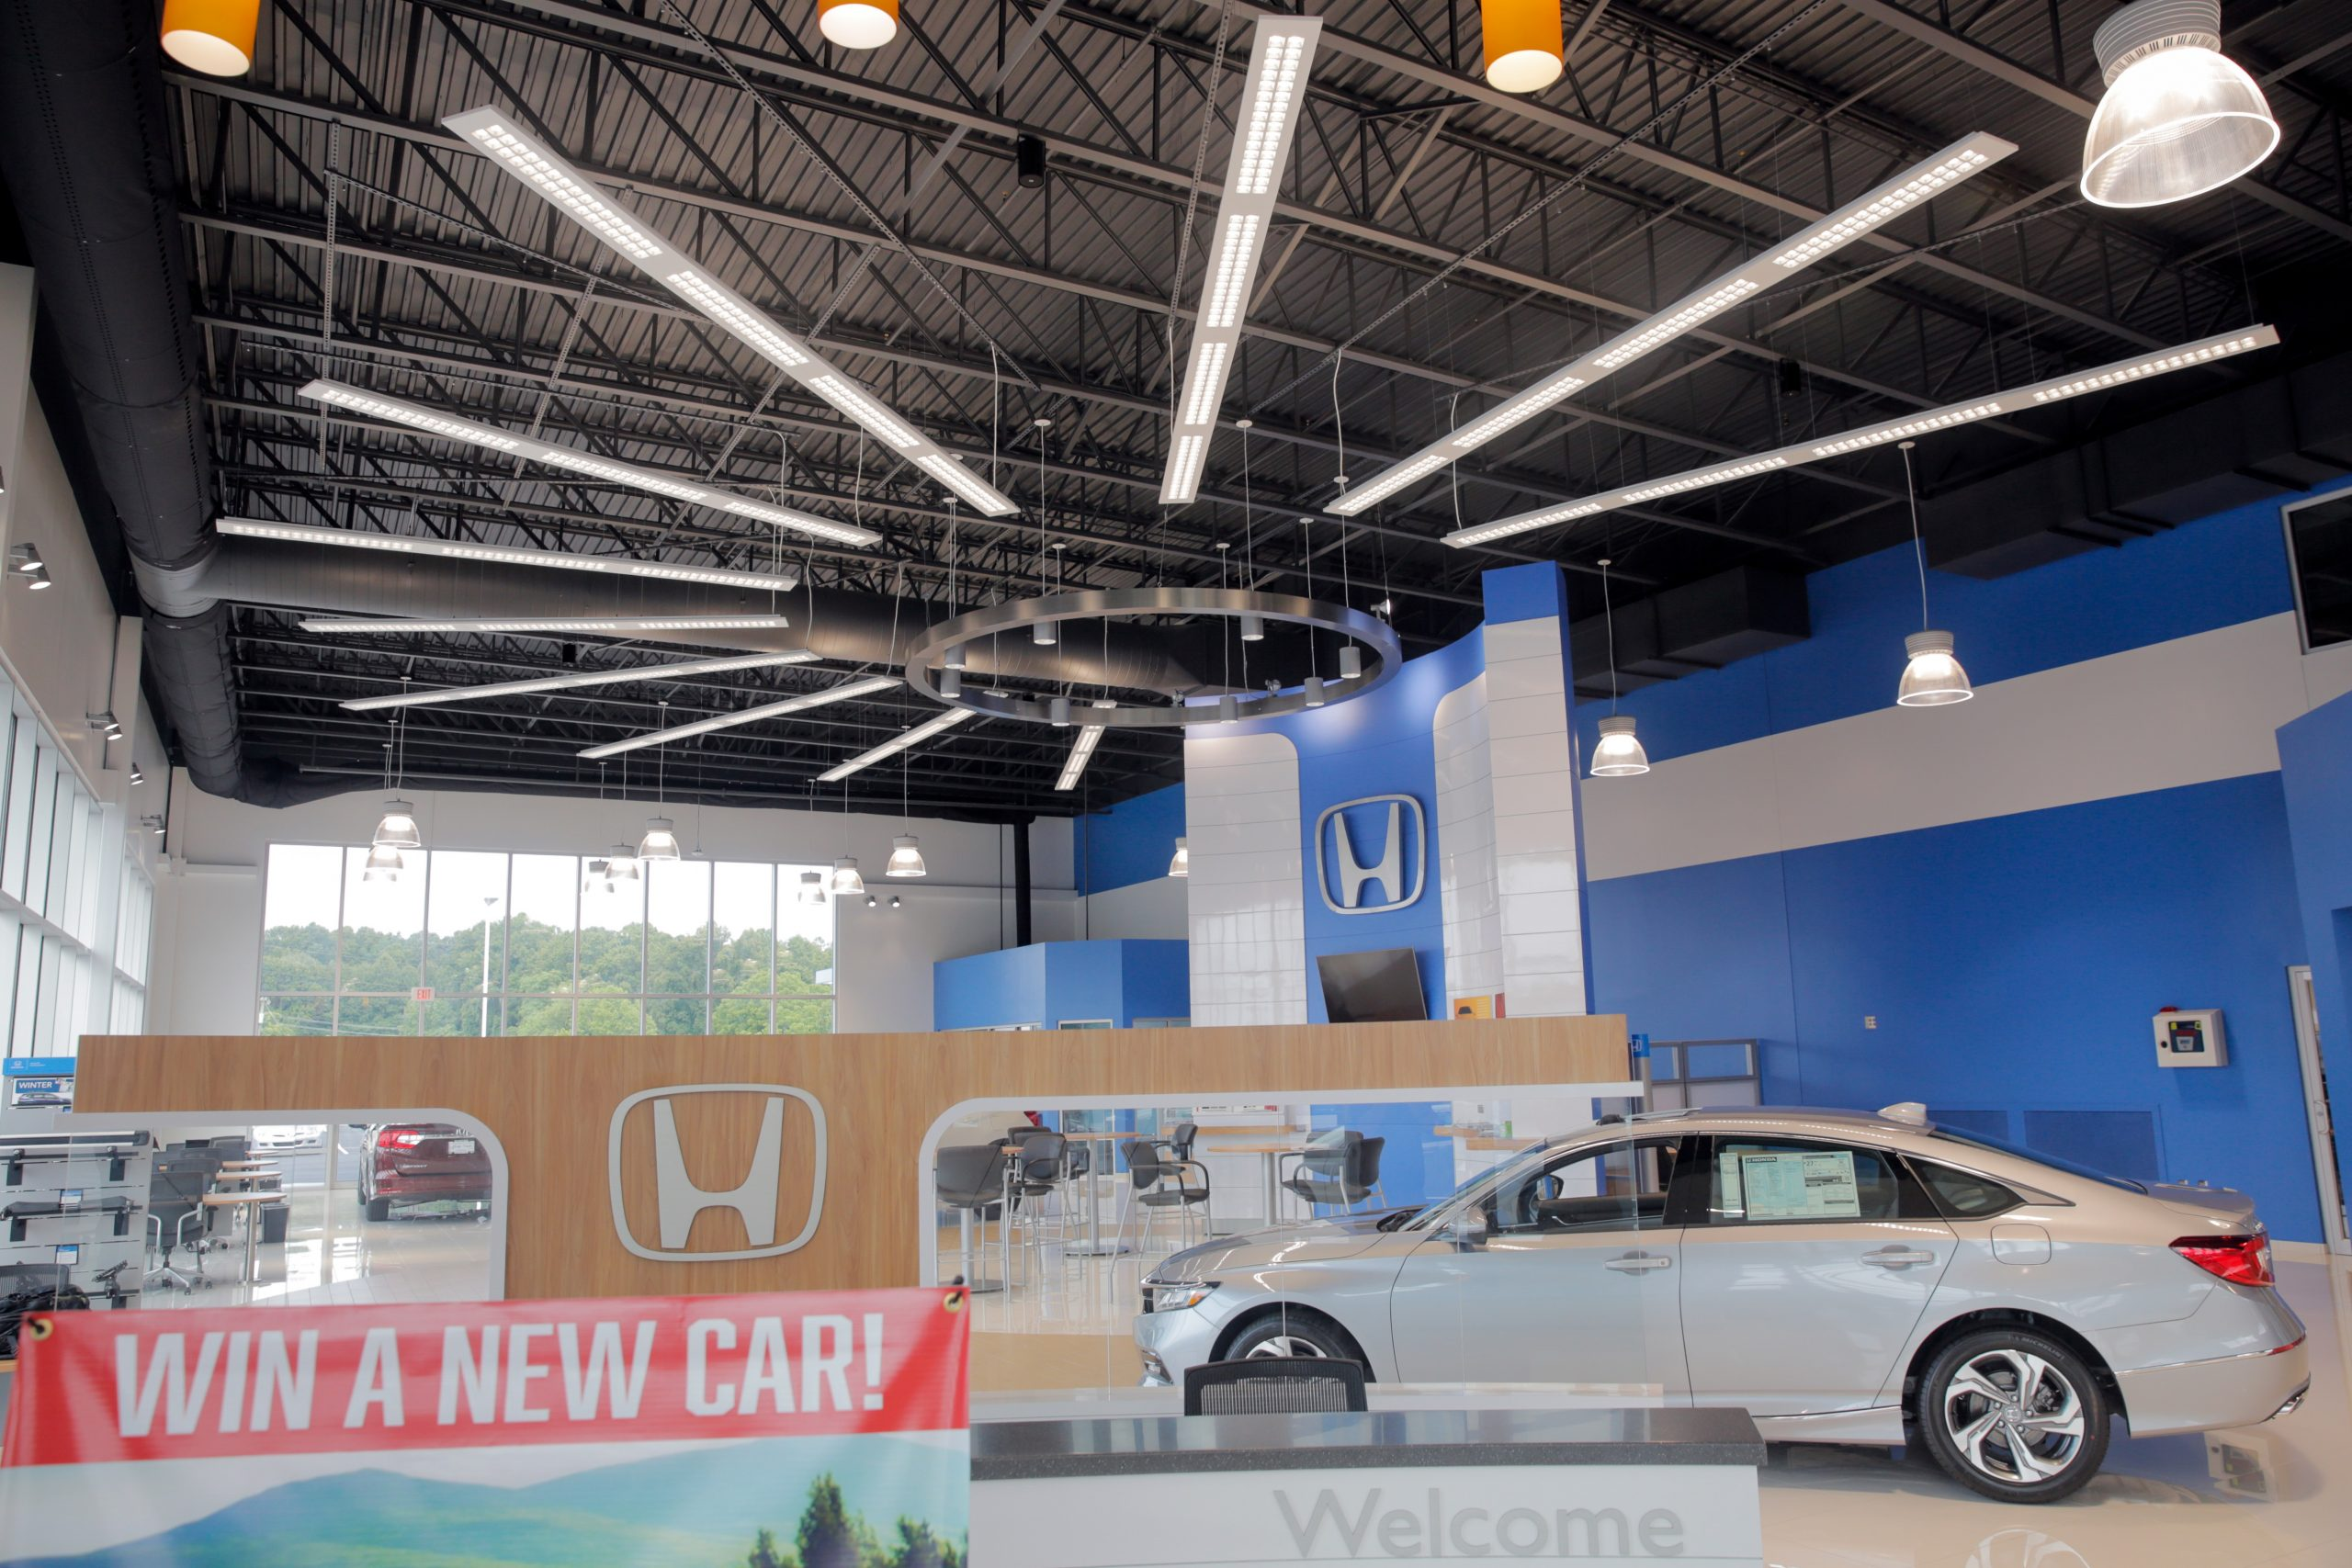 Plumbing, Electrical, Mechanical install at auto dealership